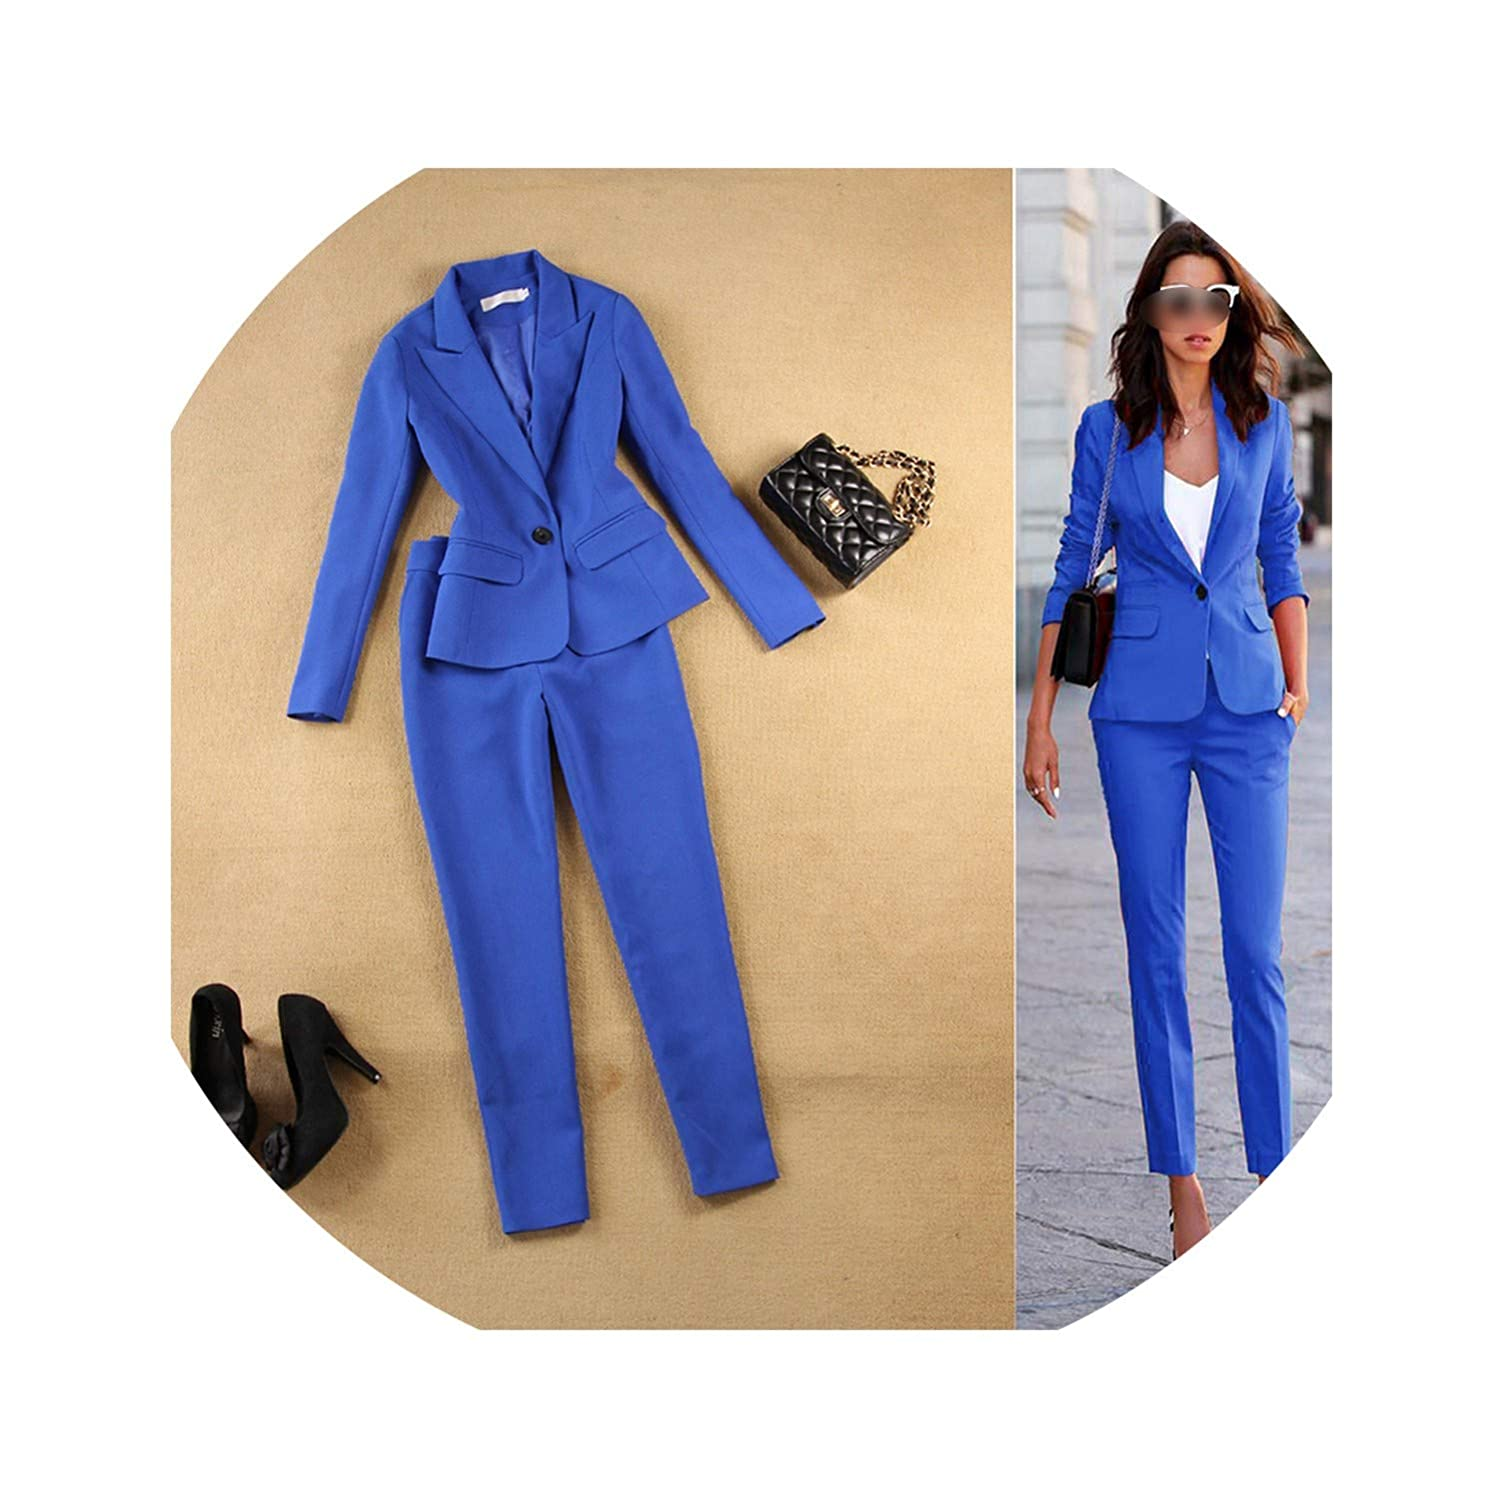 1 Our ideasBlazers Spring and Summer Women's New Slim Minimalist Suit +9 Small feet Pants tsuit Commuting Women Suits